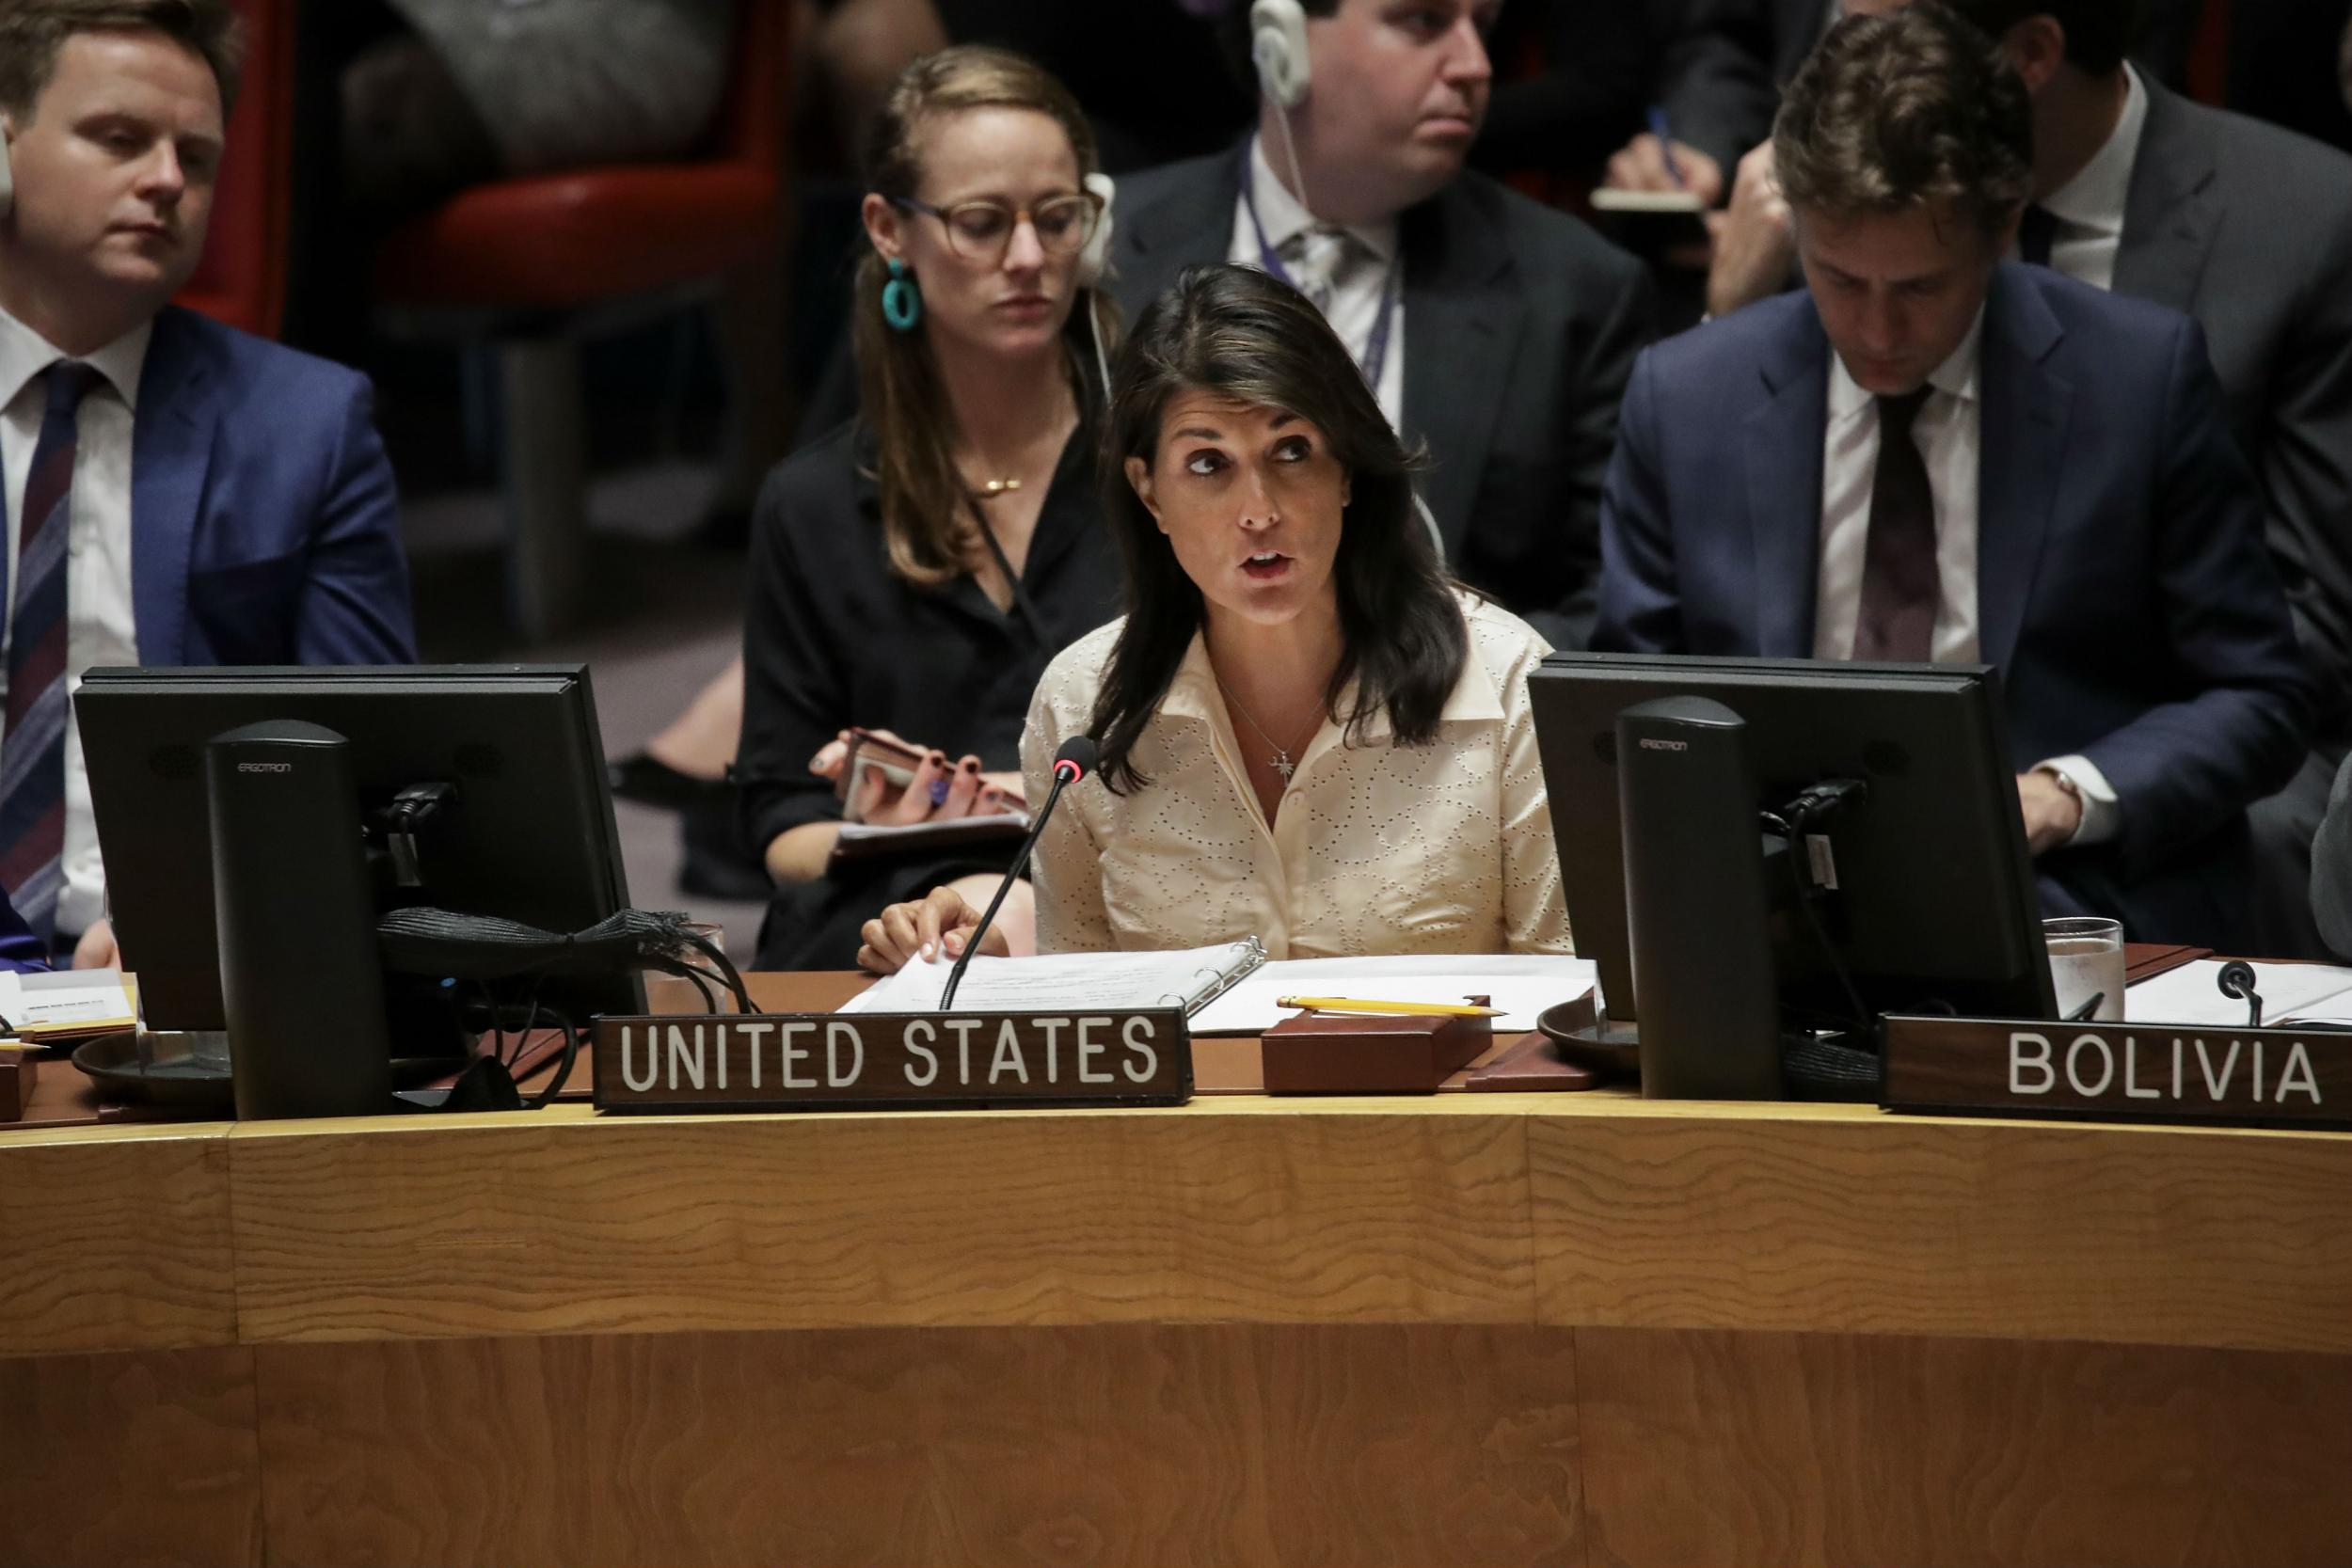 Nikki Haley tells UN 'no country would act with more restraint than Israel has' as Gaza deaths pass 60